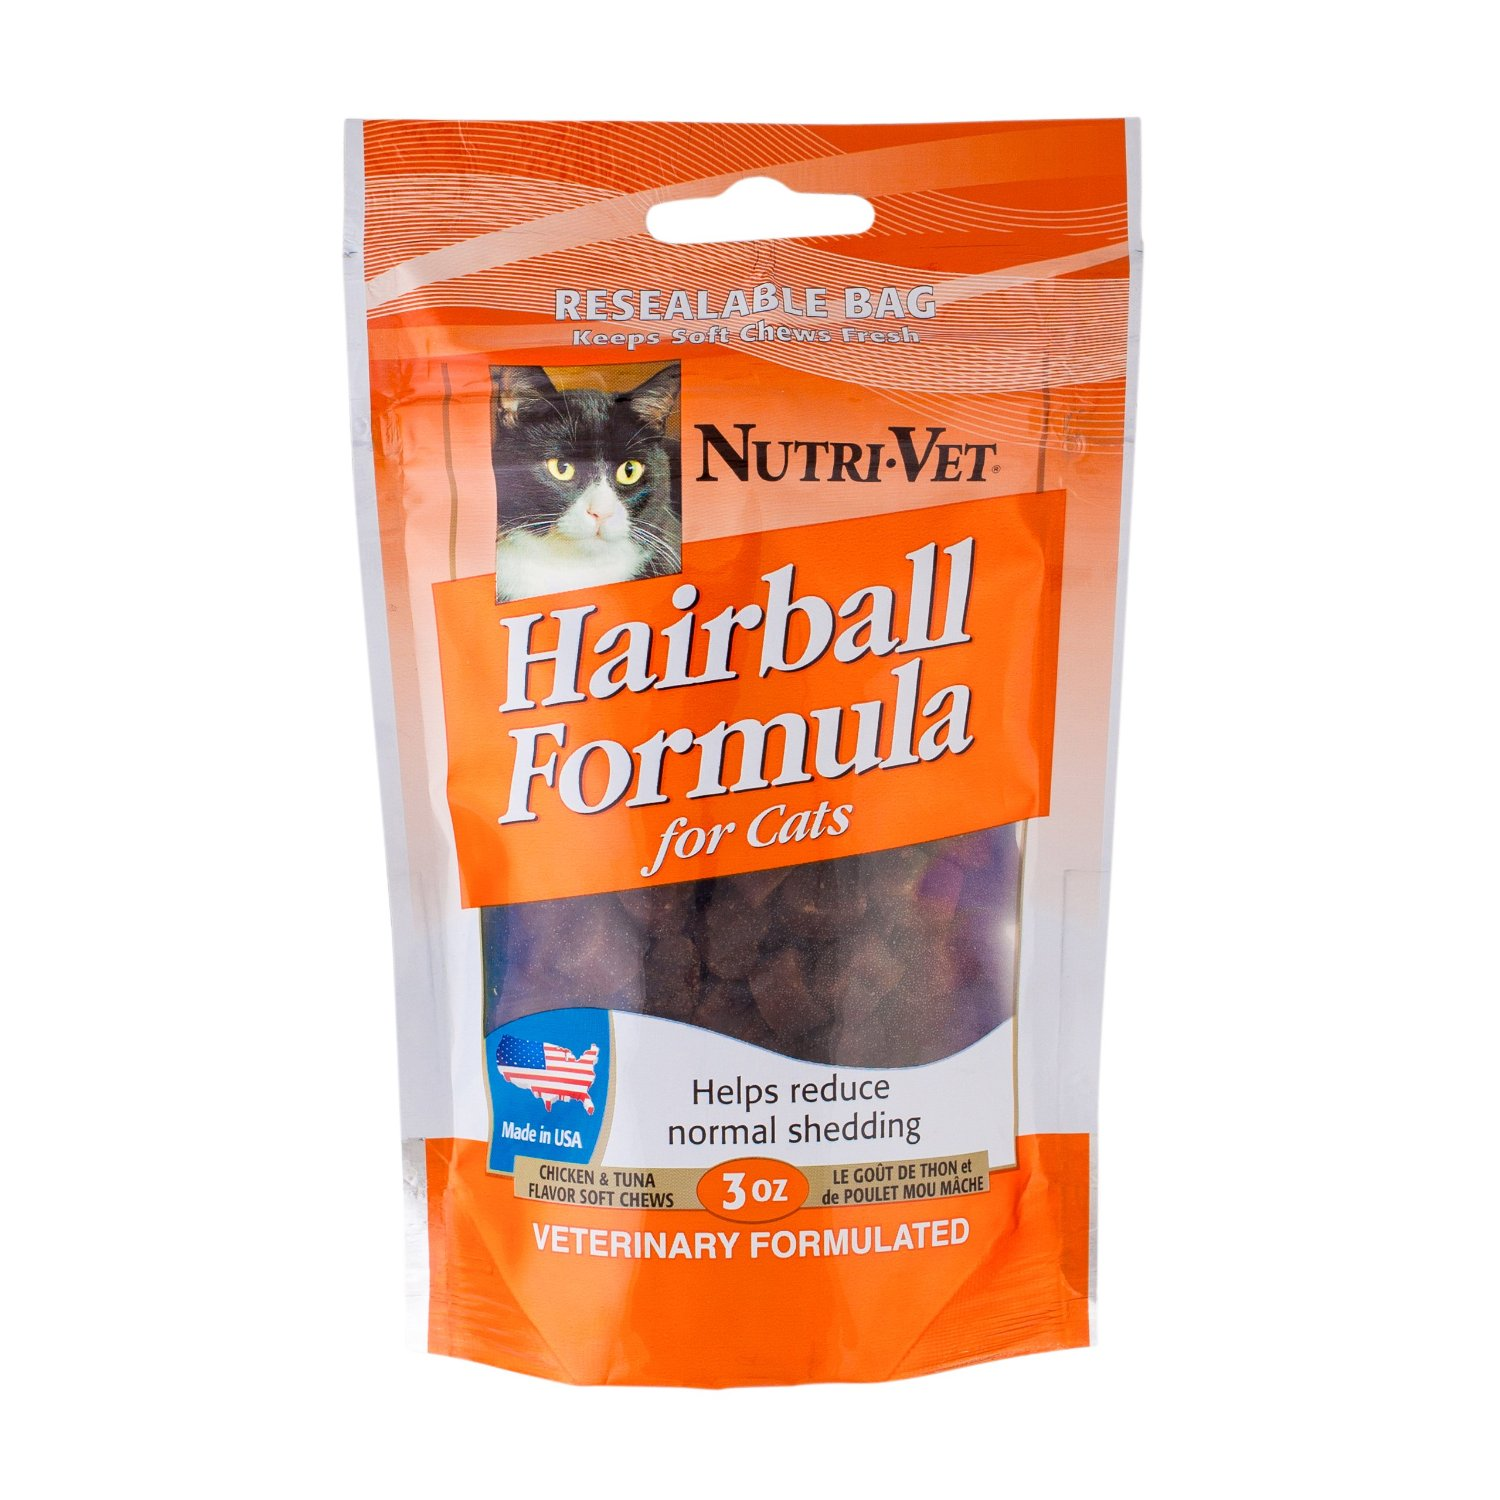 Nutri-Vet Hairball Formula Chicken and Tuna Flavor Soft Chews for Cats